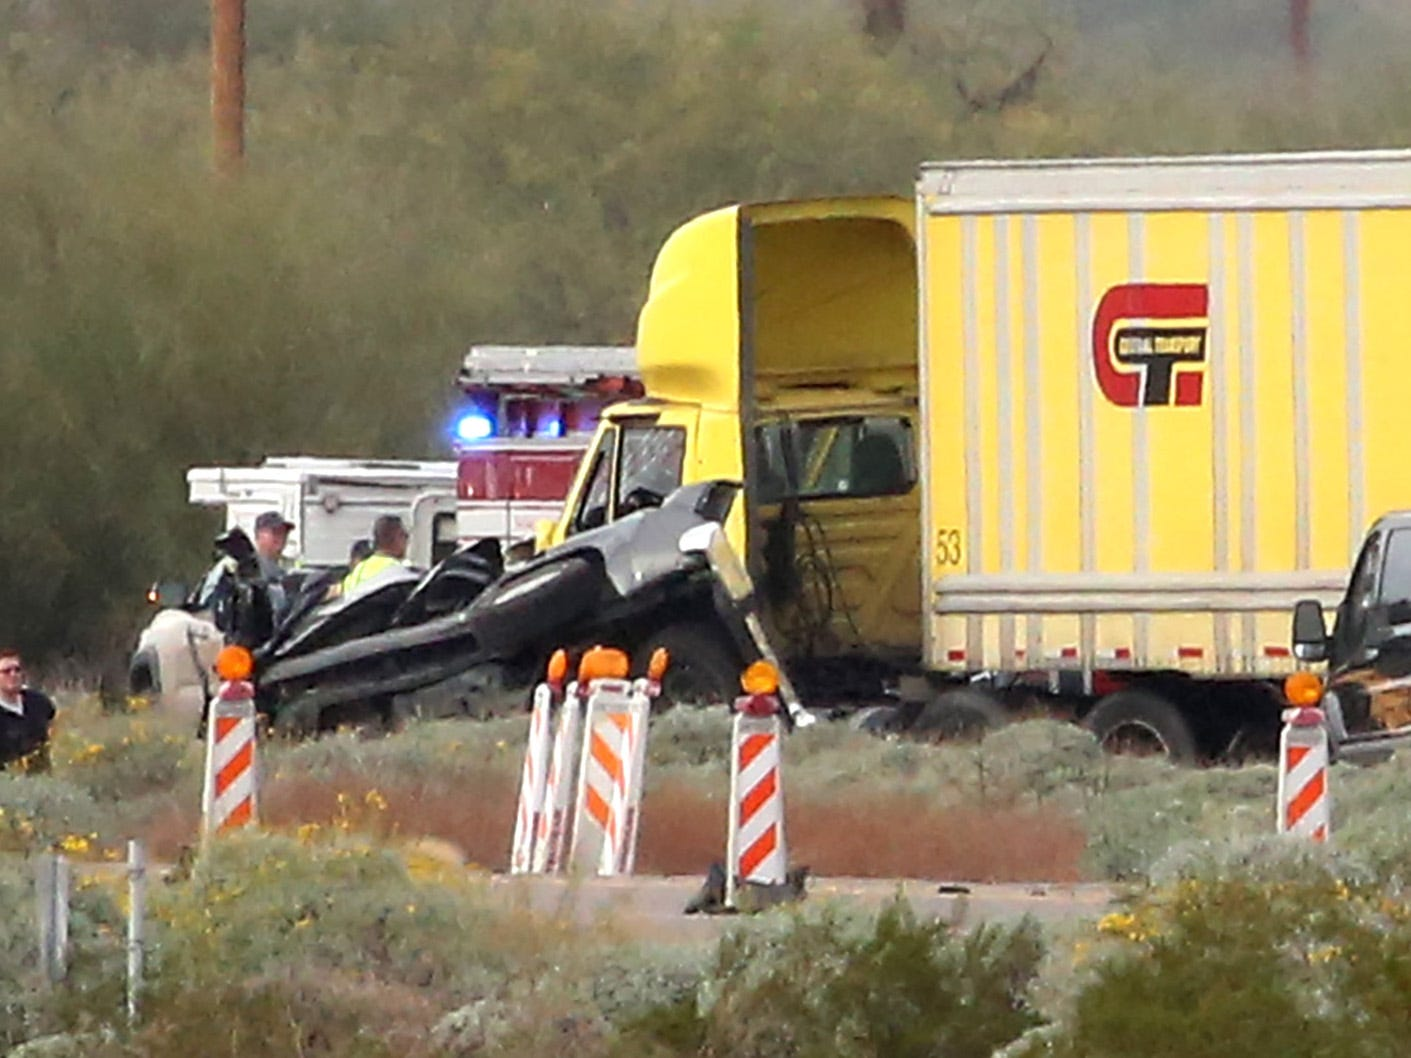 Investigators from the Arizona Department of Public Safety look over a vehicle and a tractor trailer on the scene of a multiple-fatality collision on Interstate 10 west of Pinal Airpark Road northwest of Tucson on Dec. 21, 2018.